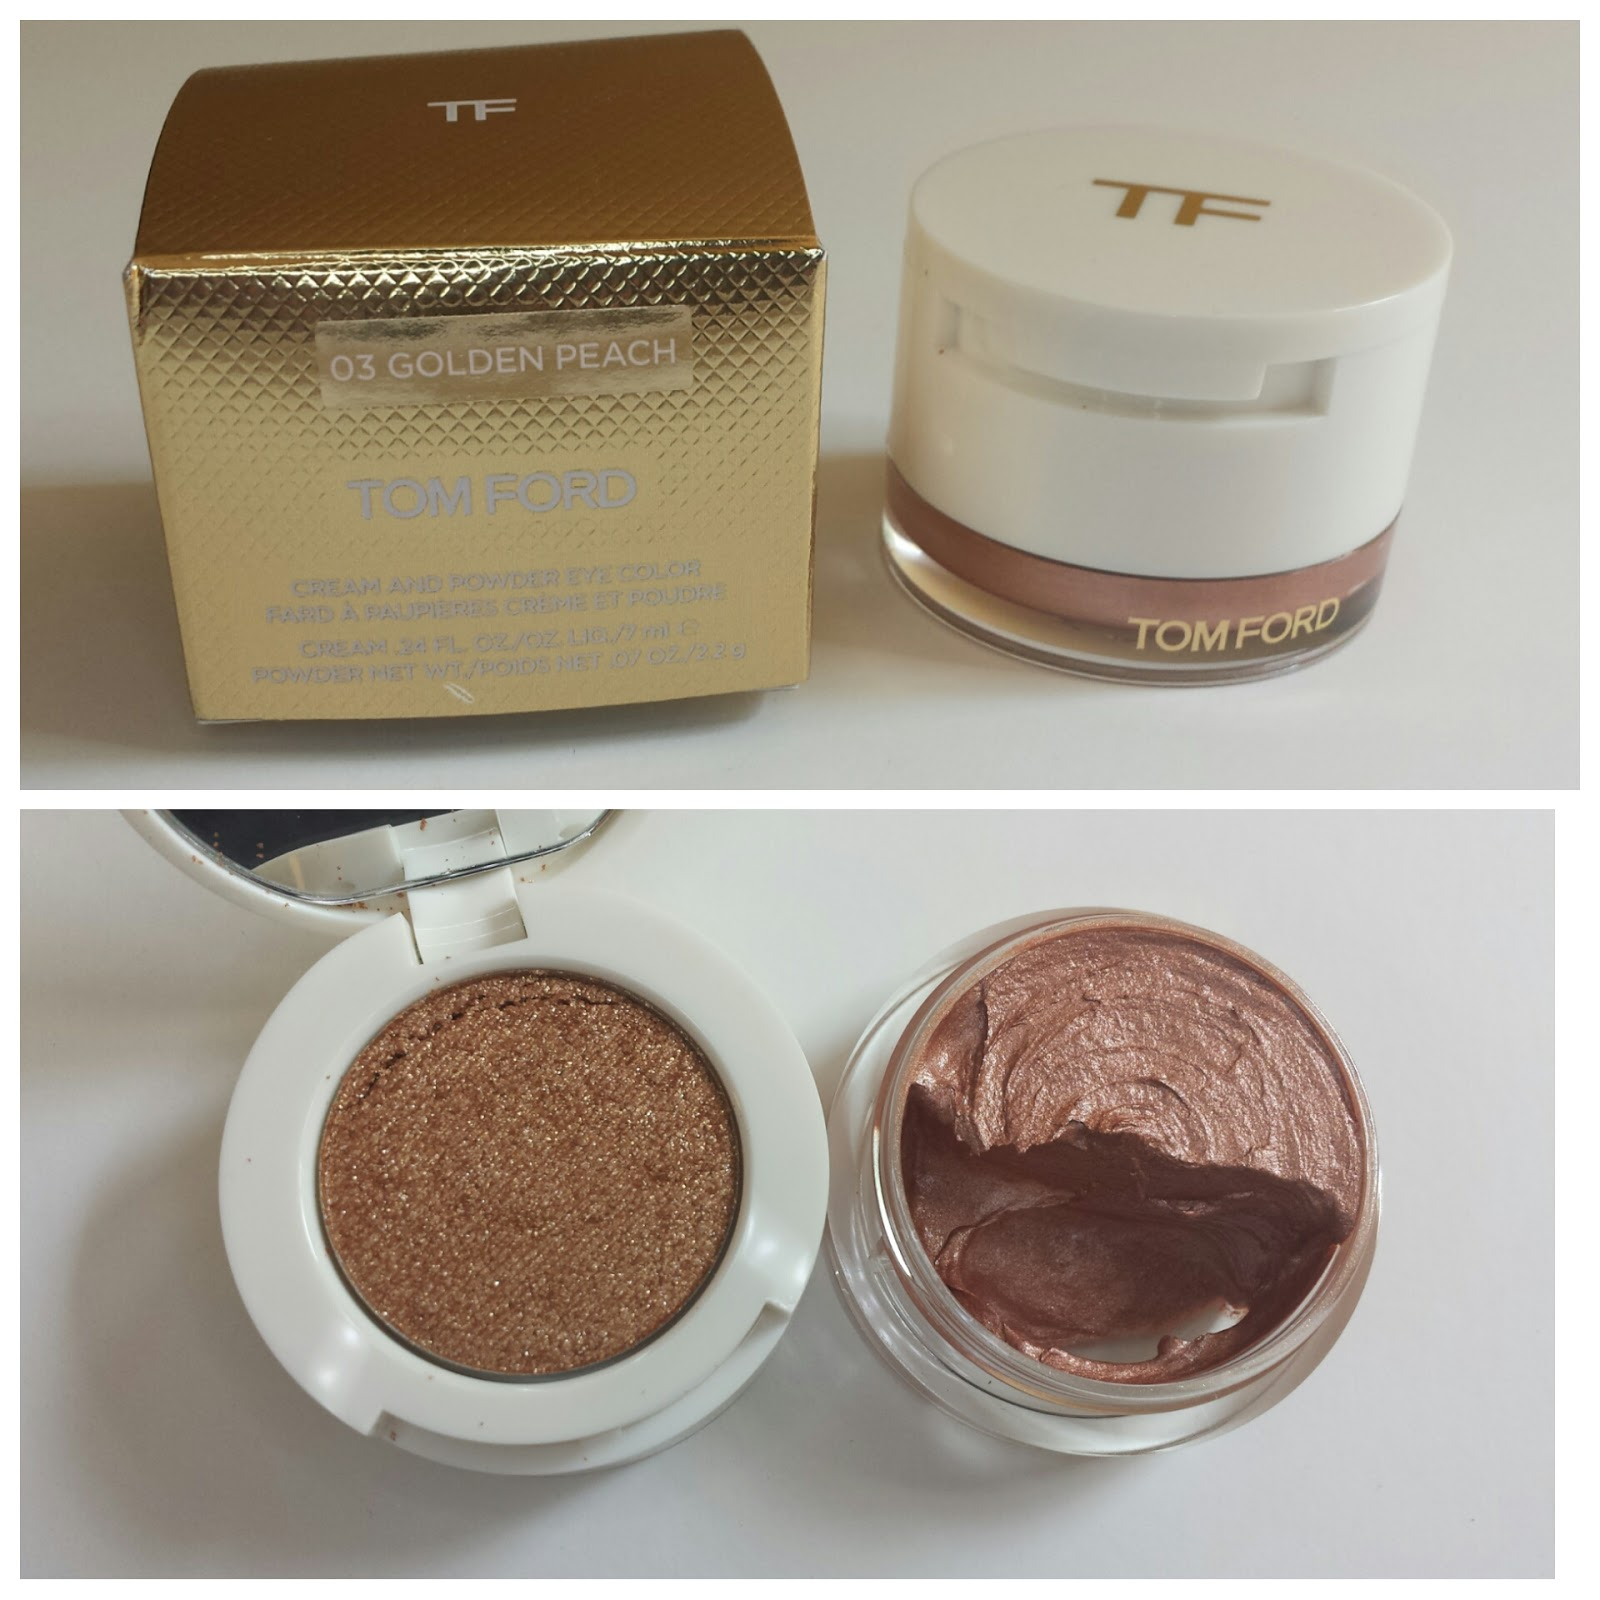 Tom Ford Cream And Powder Eye Color Golden Peach Will Sing For